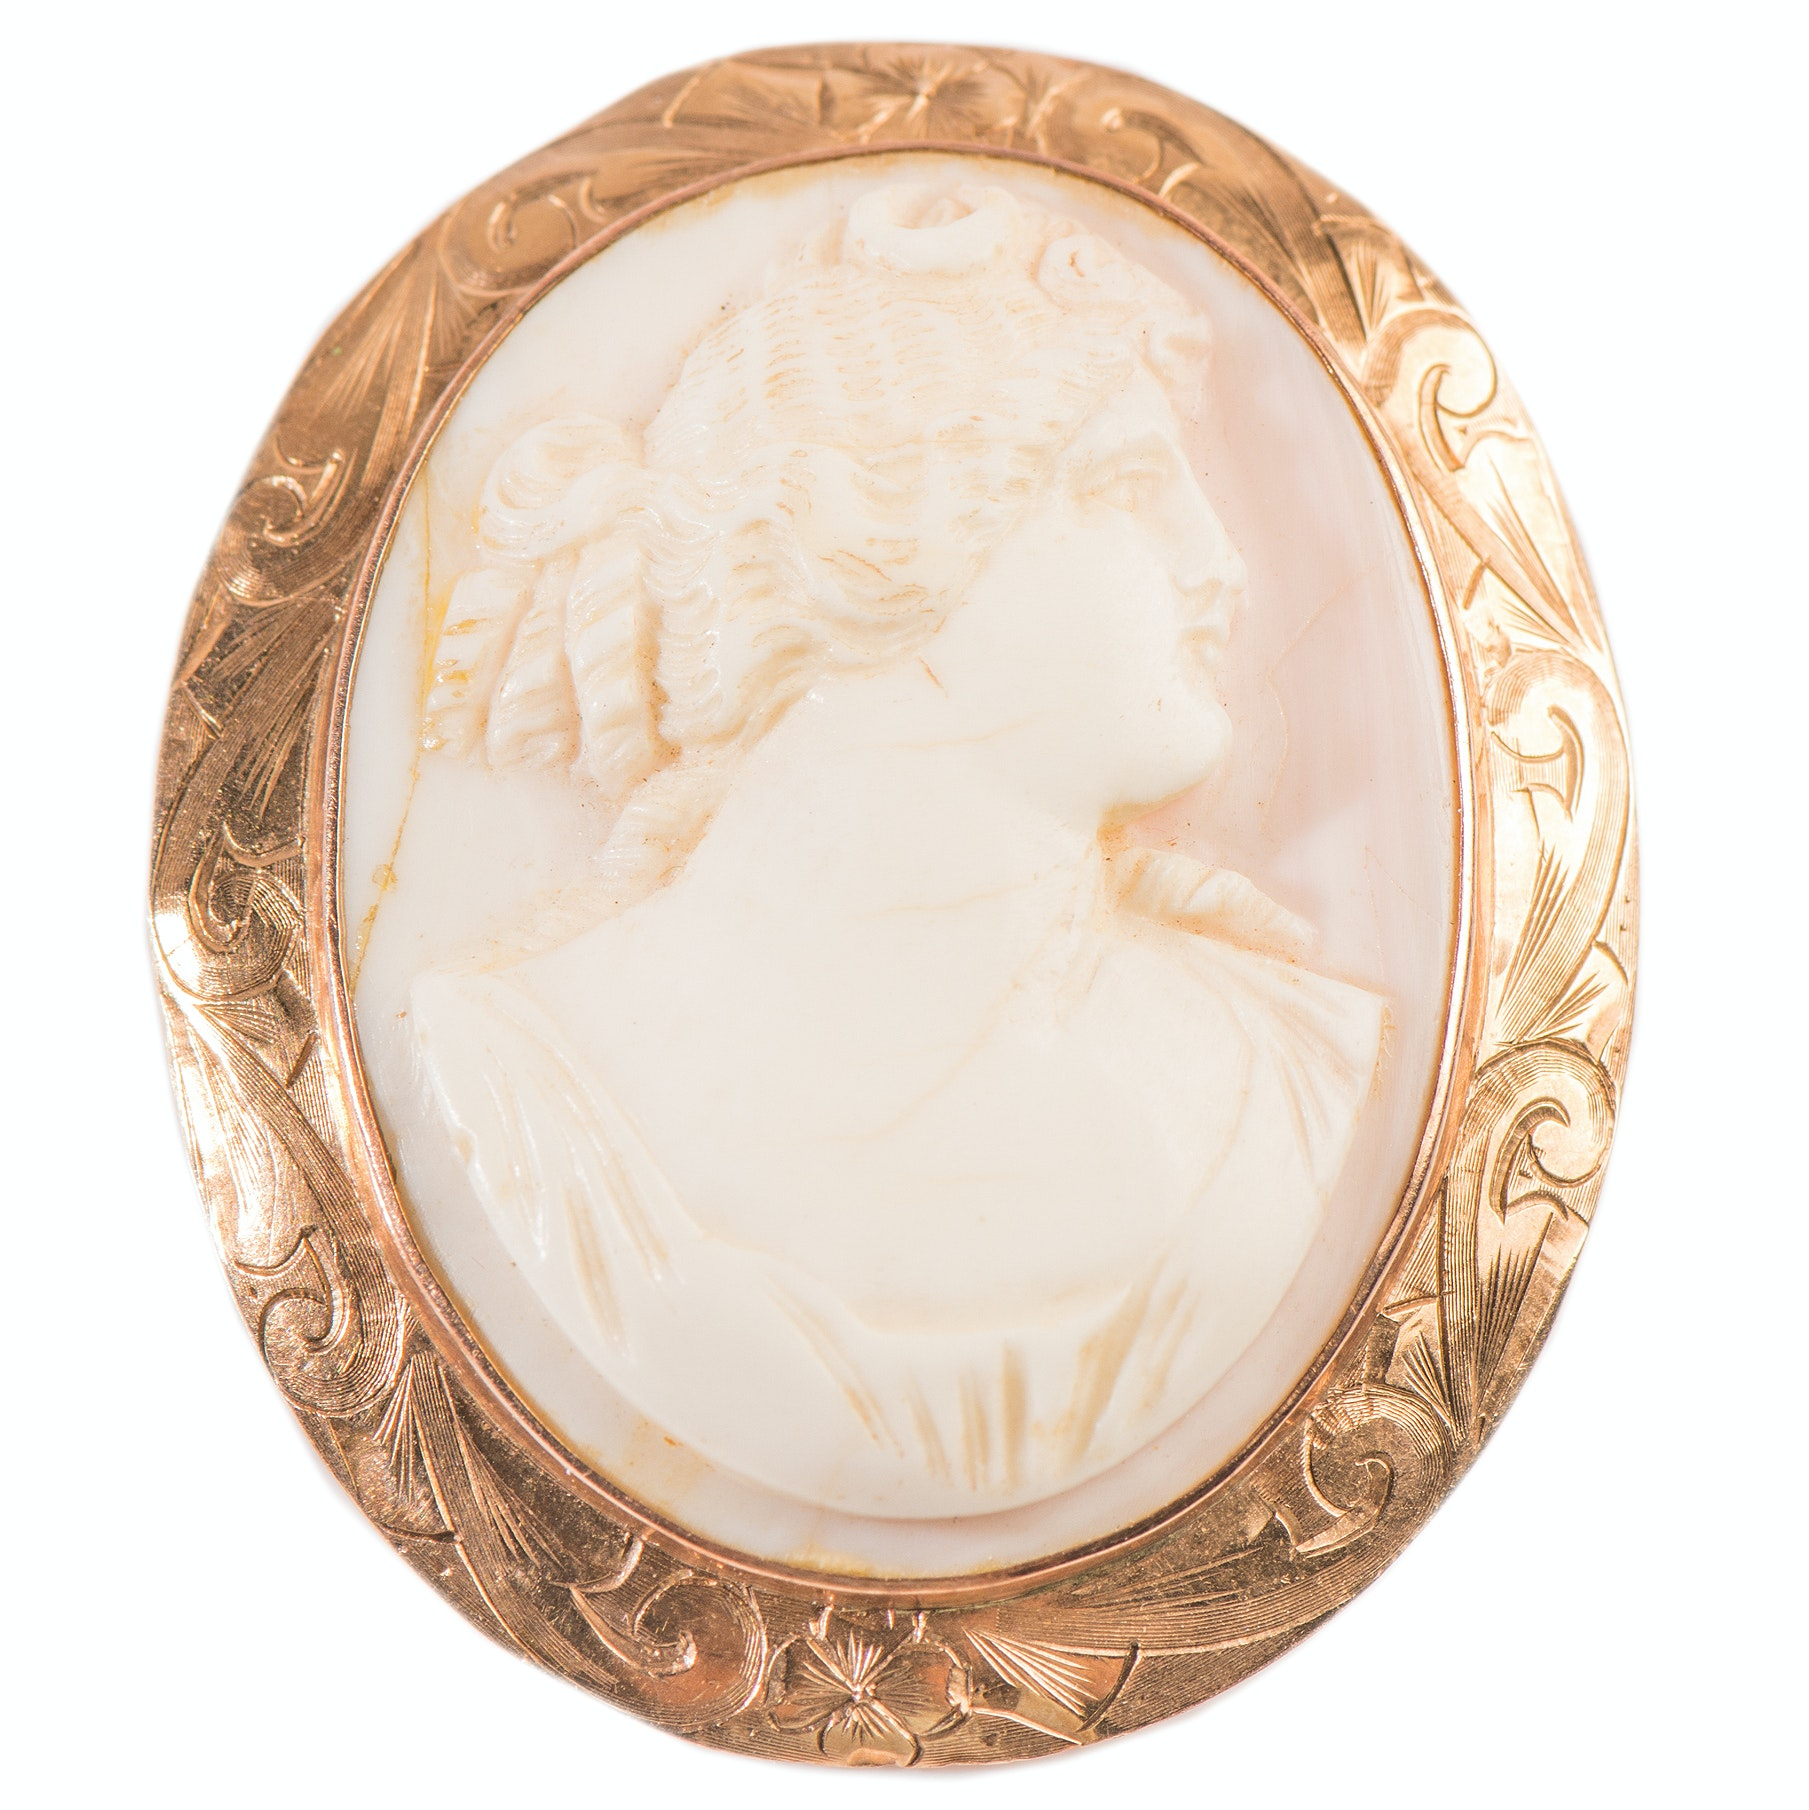 14K Yellow Gold Shell Cameo Brooch